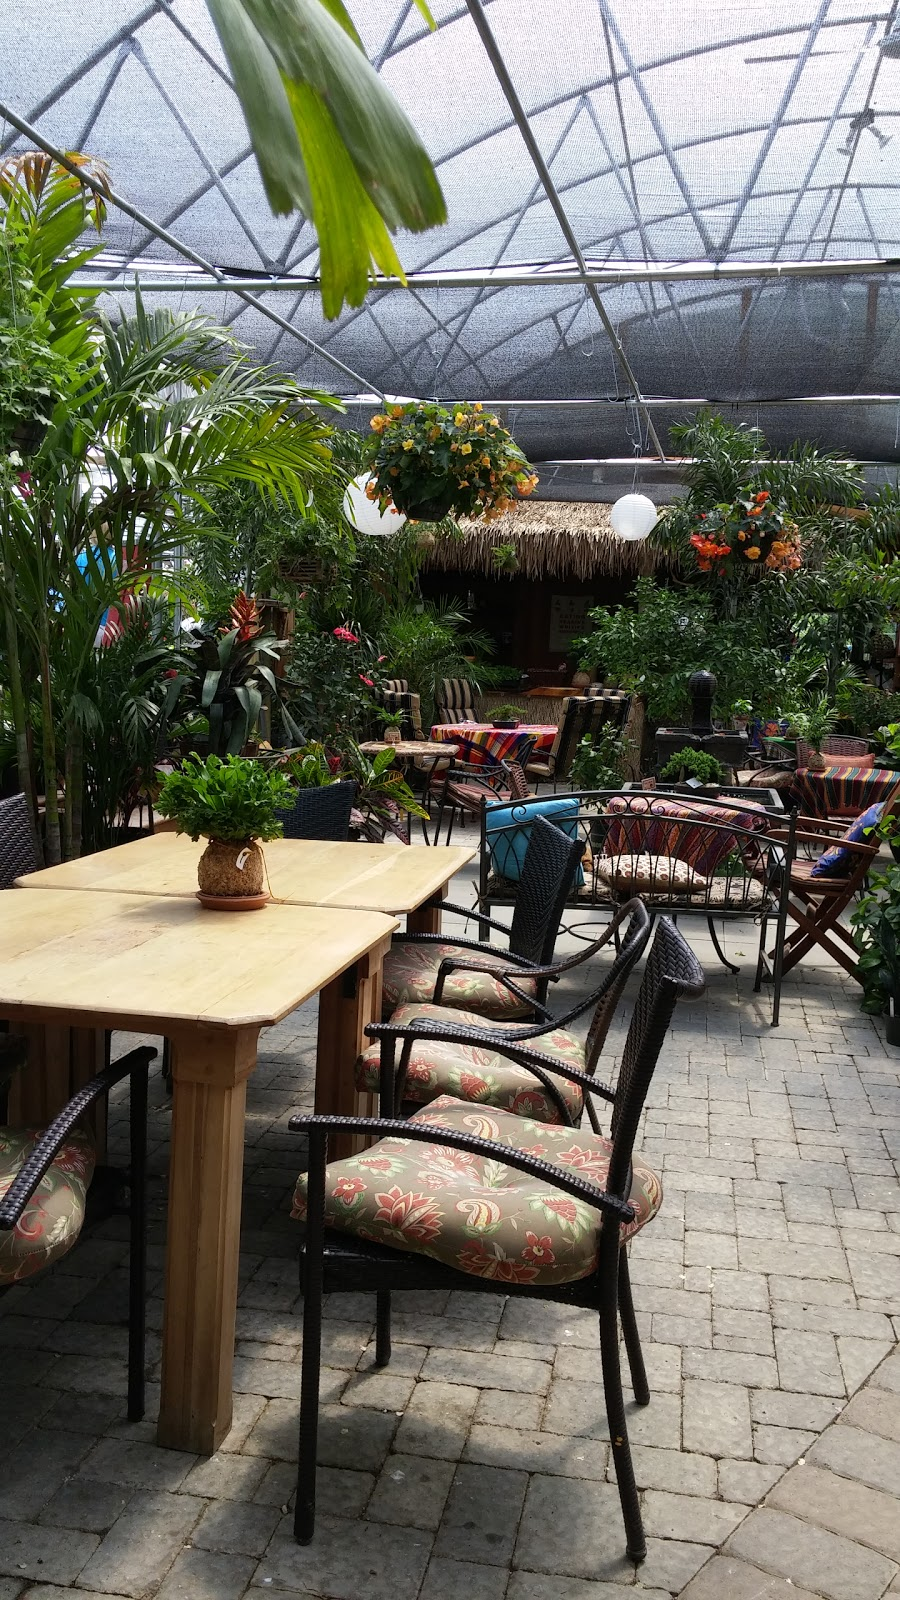 Carefree Gardens - cafe  | Photo 2 of 3 | Address: 558 Beaver Meadow Rd, Cooperstown, NY 13326, USA | Phone: (607) 547-9744